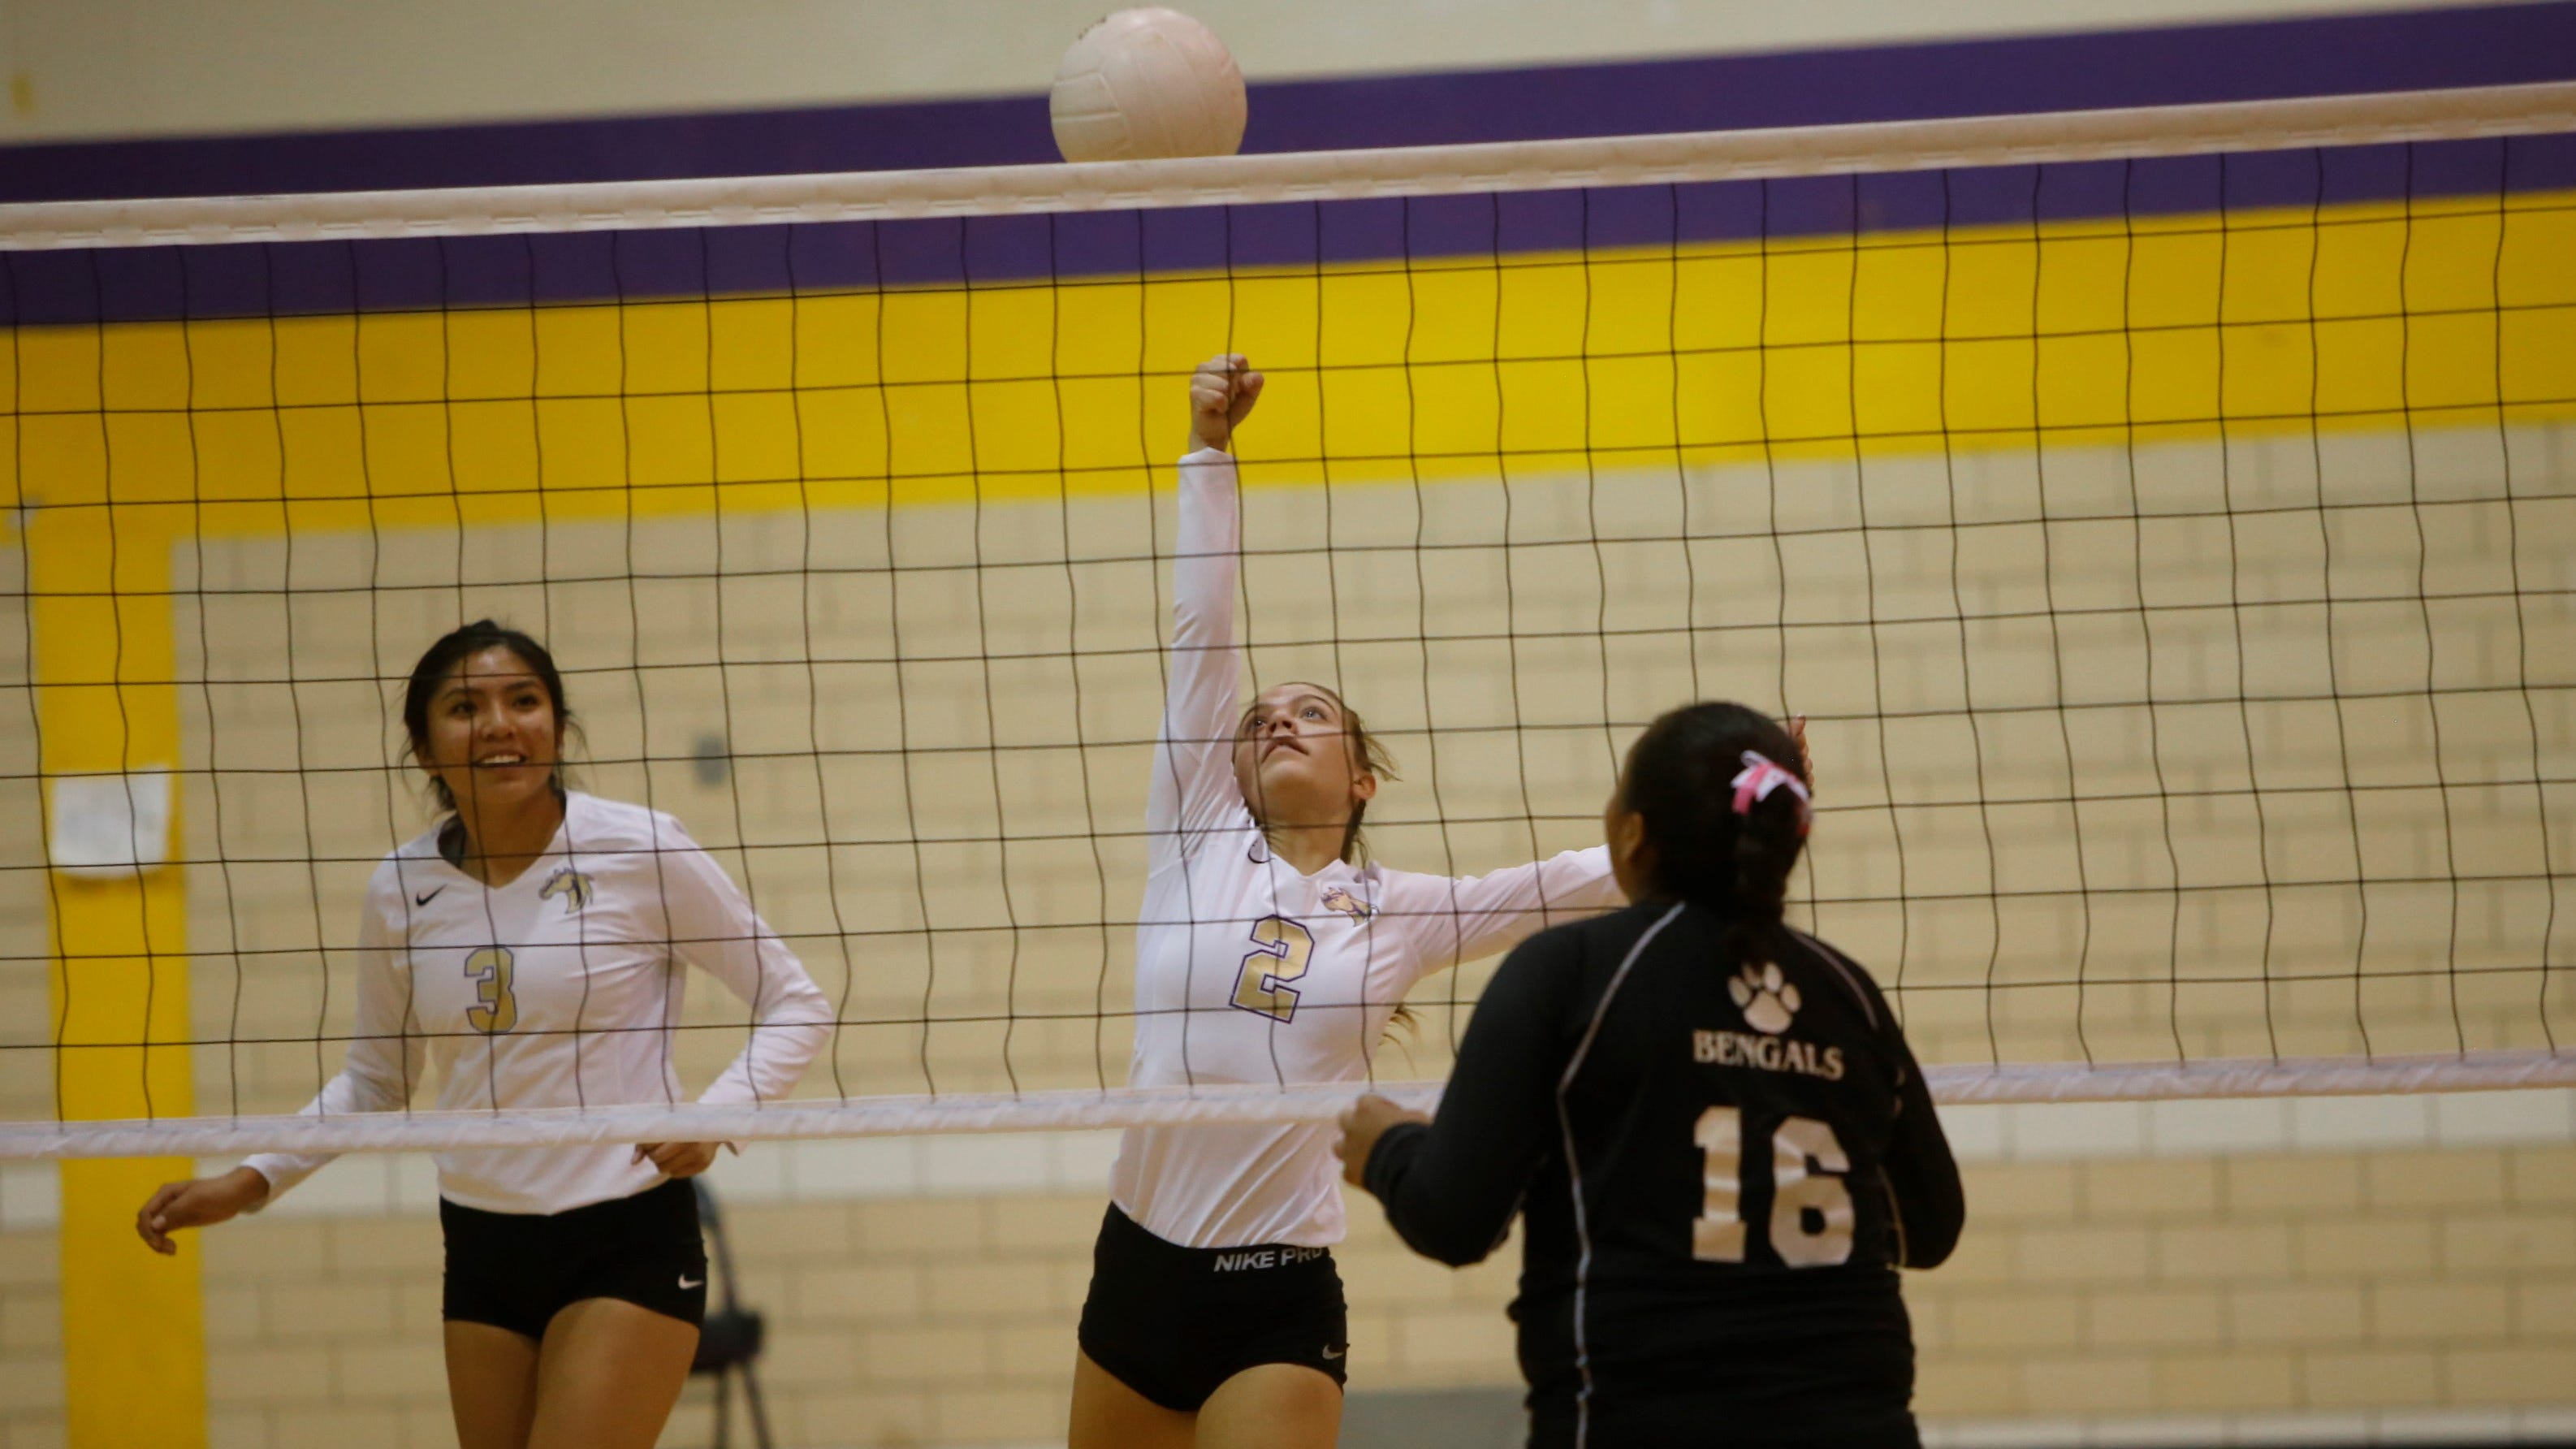 Kirtland Central's Peanut Dryden punches the ball over the net against Gallup's Hailey Long (16) during Thursday's District 1-4A match at KCHS.